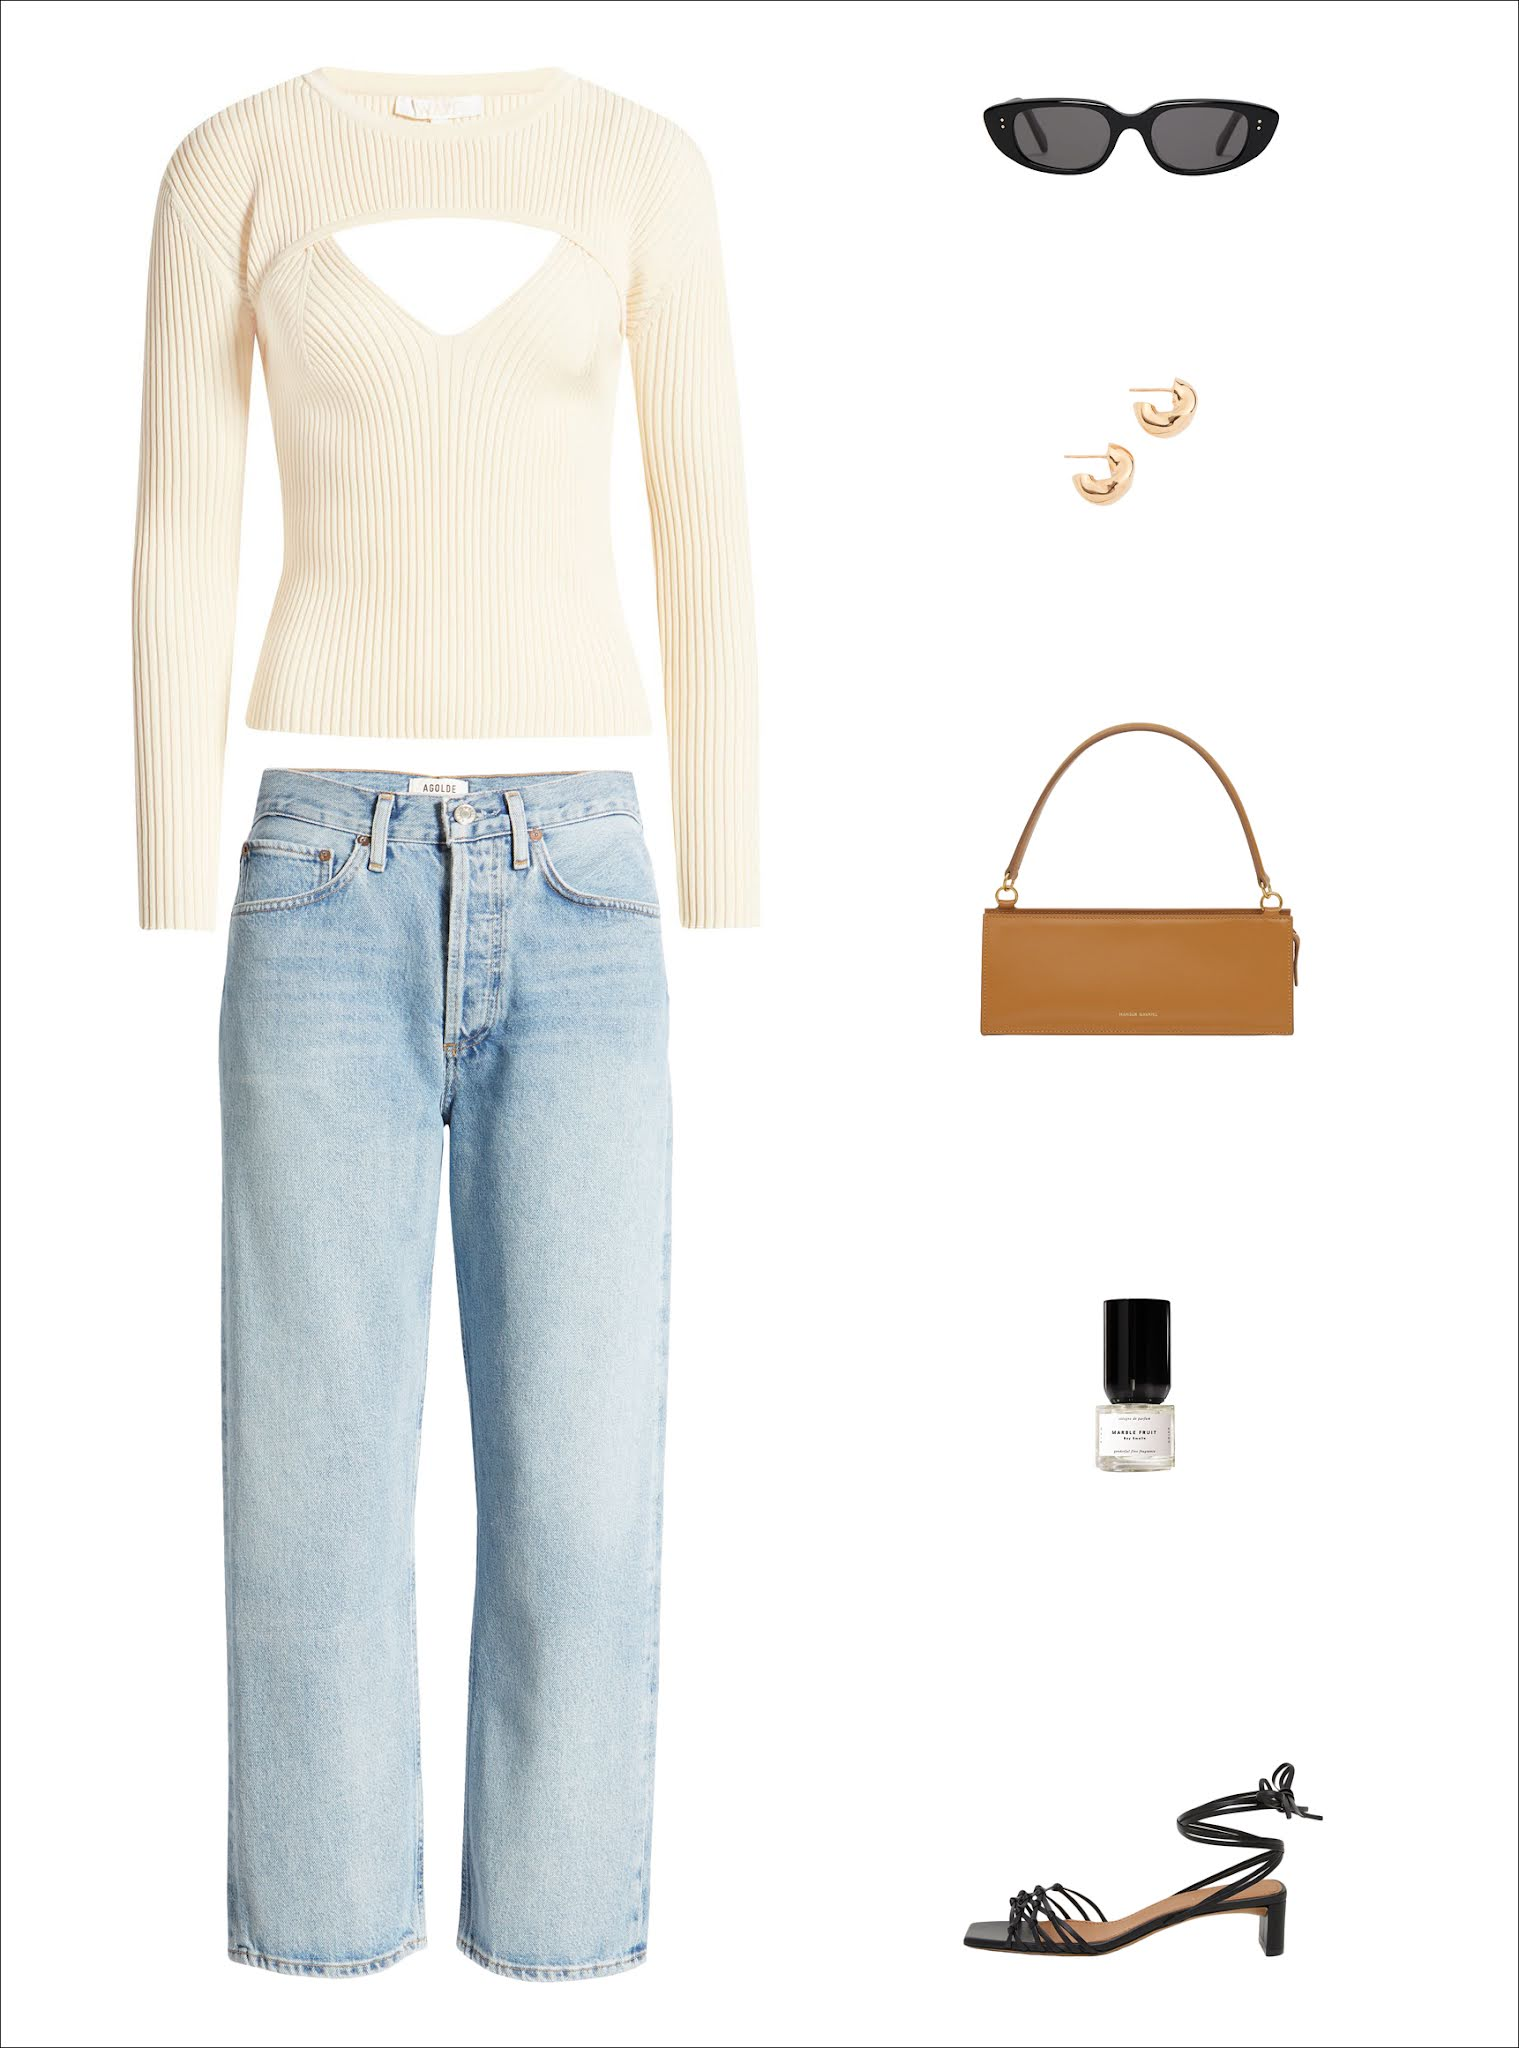 How to Transition a Cool Sweater From Summer to Fall — Outfit idea with under $100 cutout sweater, black oval sunglasses, chunky hoop earrings, a sleek mini bag, '90s-inspired jeans, and black strappy sandals